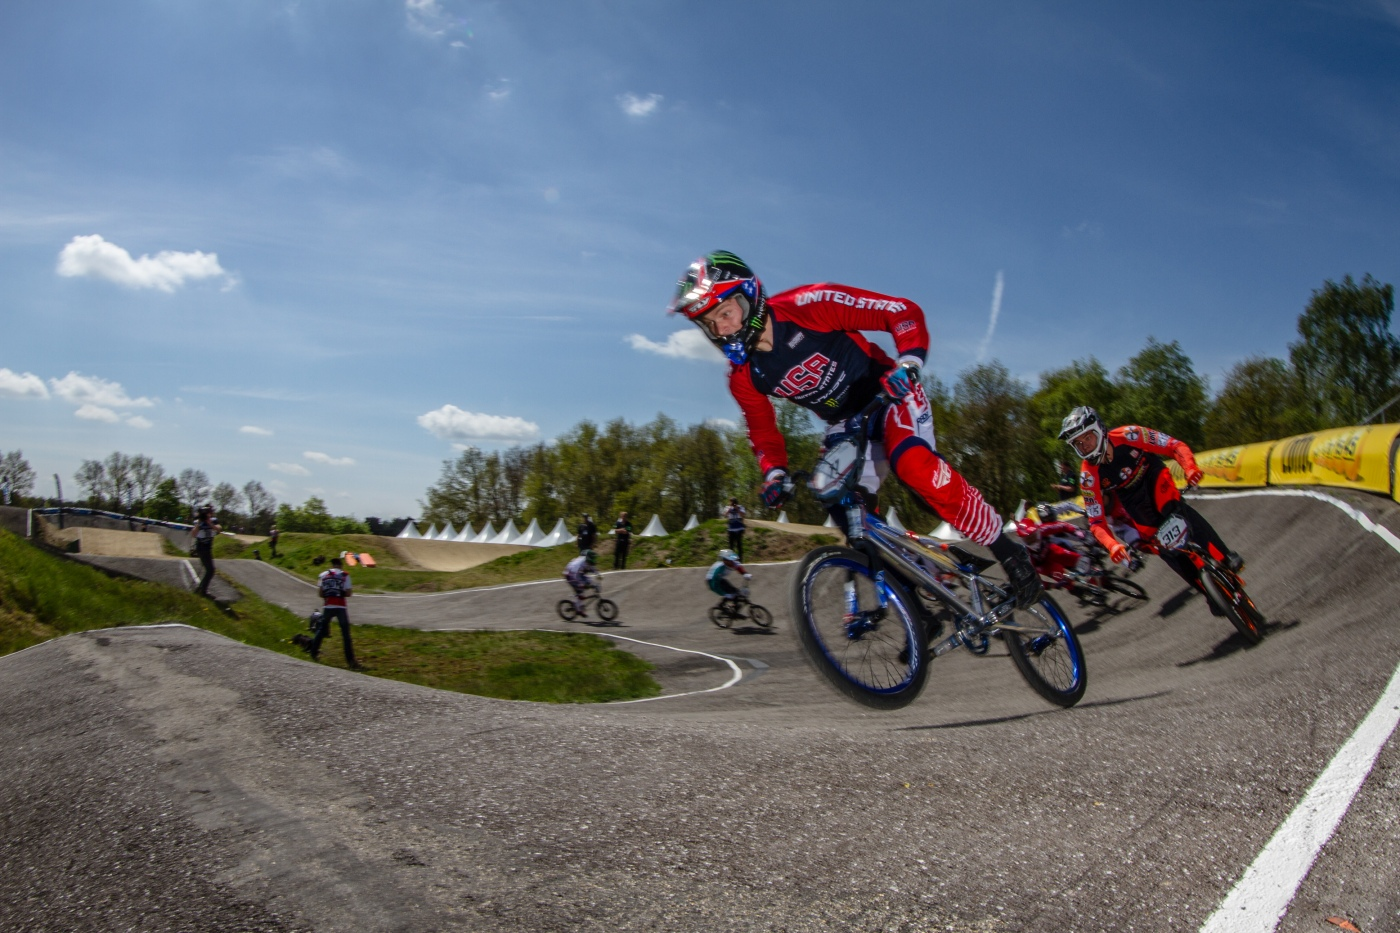 #11 (FIELDS Connor) USA at the 2015 UCI BMX Supercross World Cup in Papendal, The Netherlands